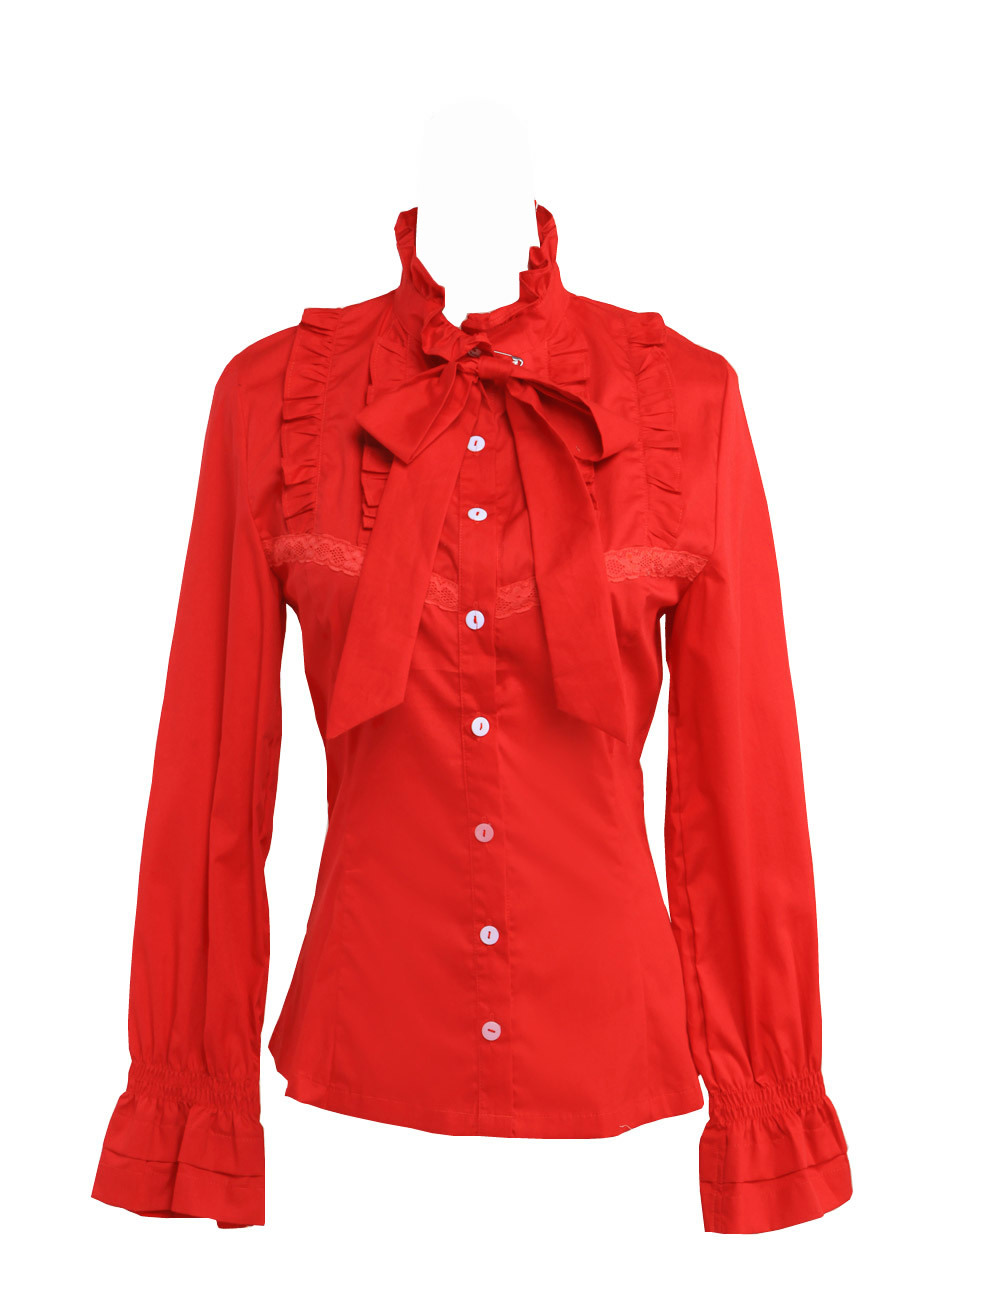 Primary image for Red Stand-up Collar Bow Ruffle Victorian Retro Cotton Lolita Shirt Blouse